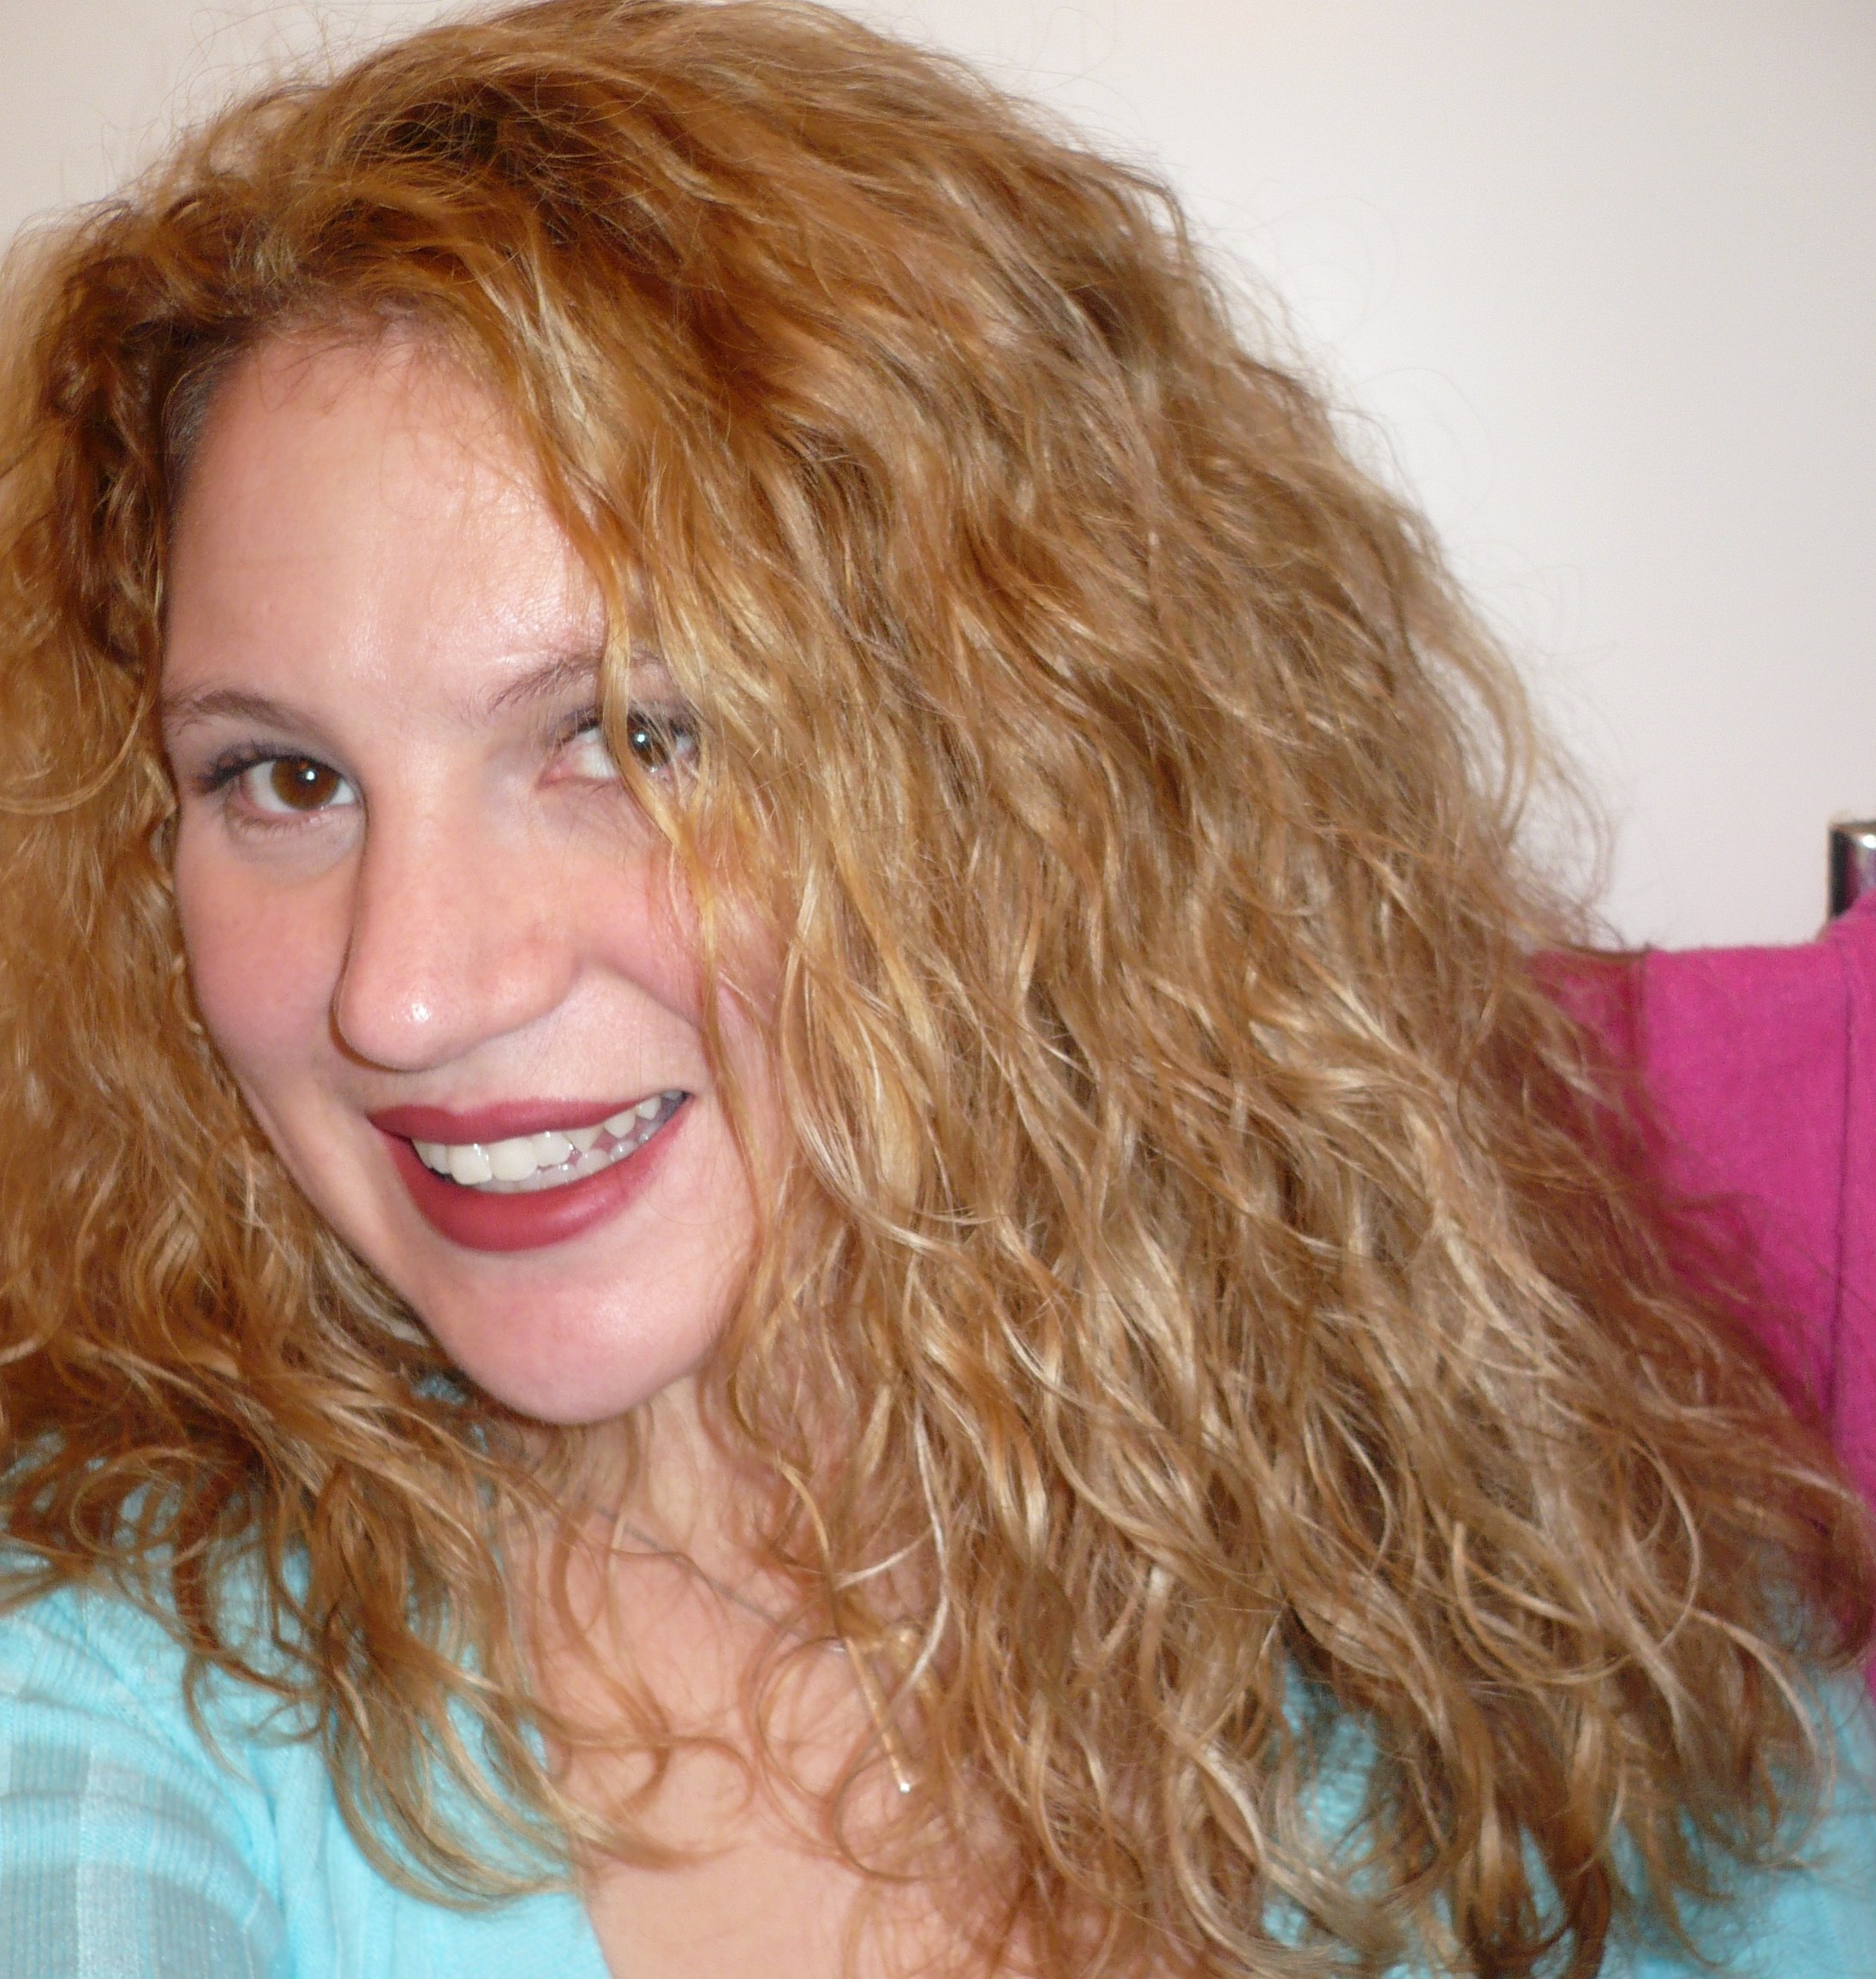 Styling Products For Thick Hair: Best Shampoo, Conditioner, And Products ...